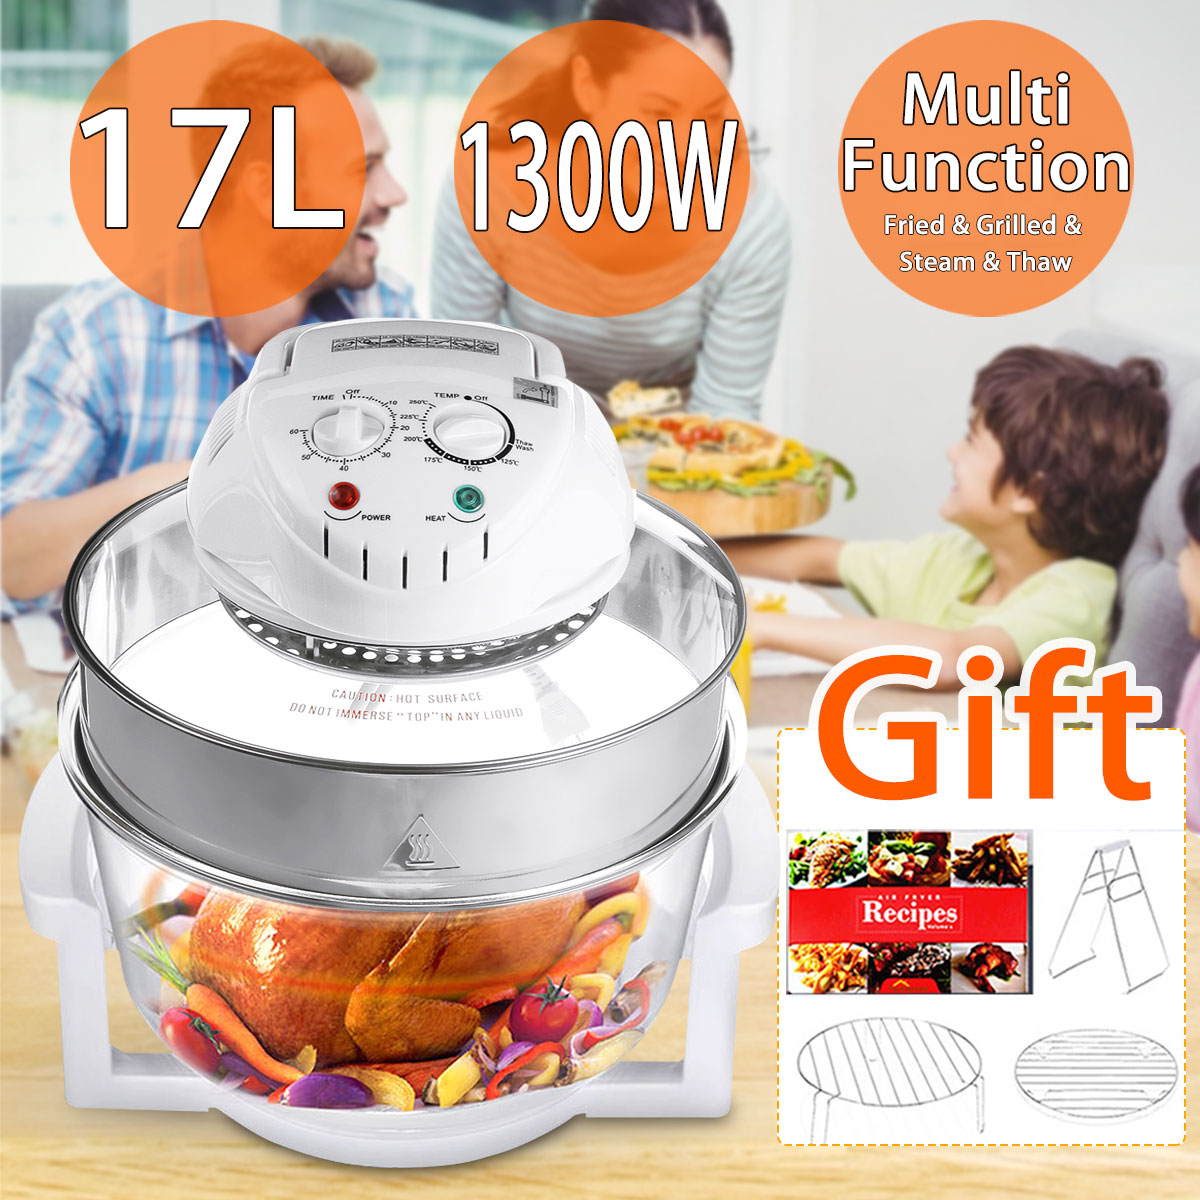 17L Convection Oven Roaster Air Fryer 1300W 110V-240V Turbo Electric Cooker Multifunction Infrared Oven With Recipe Gift